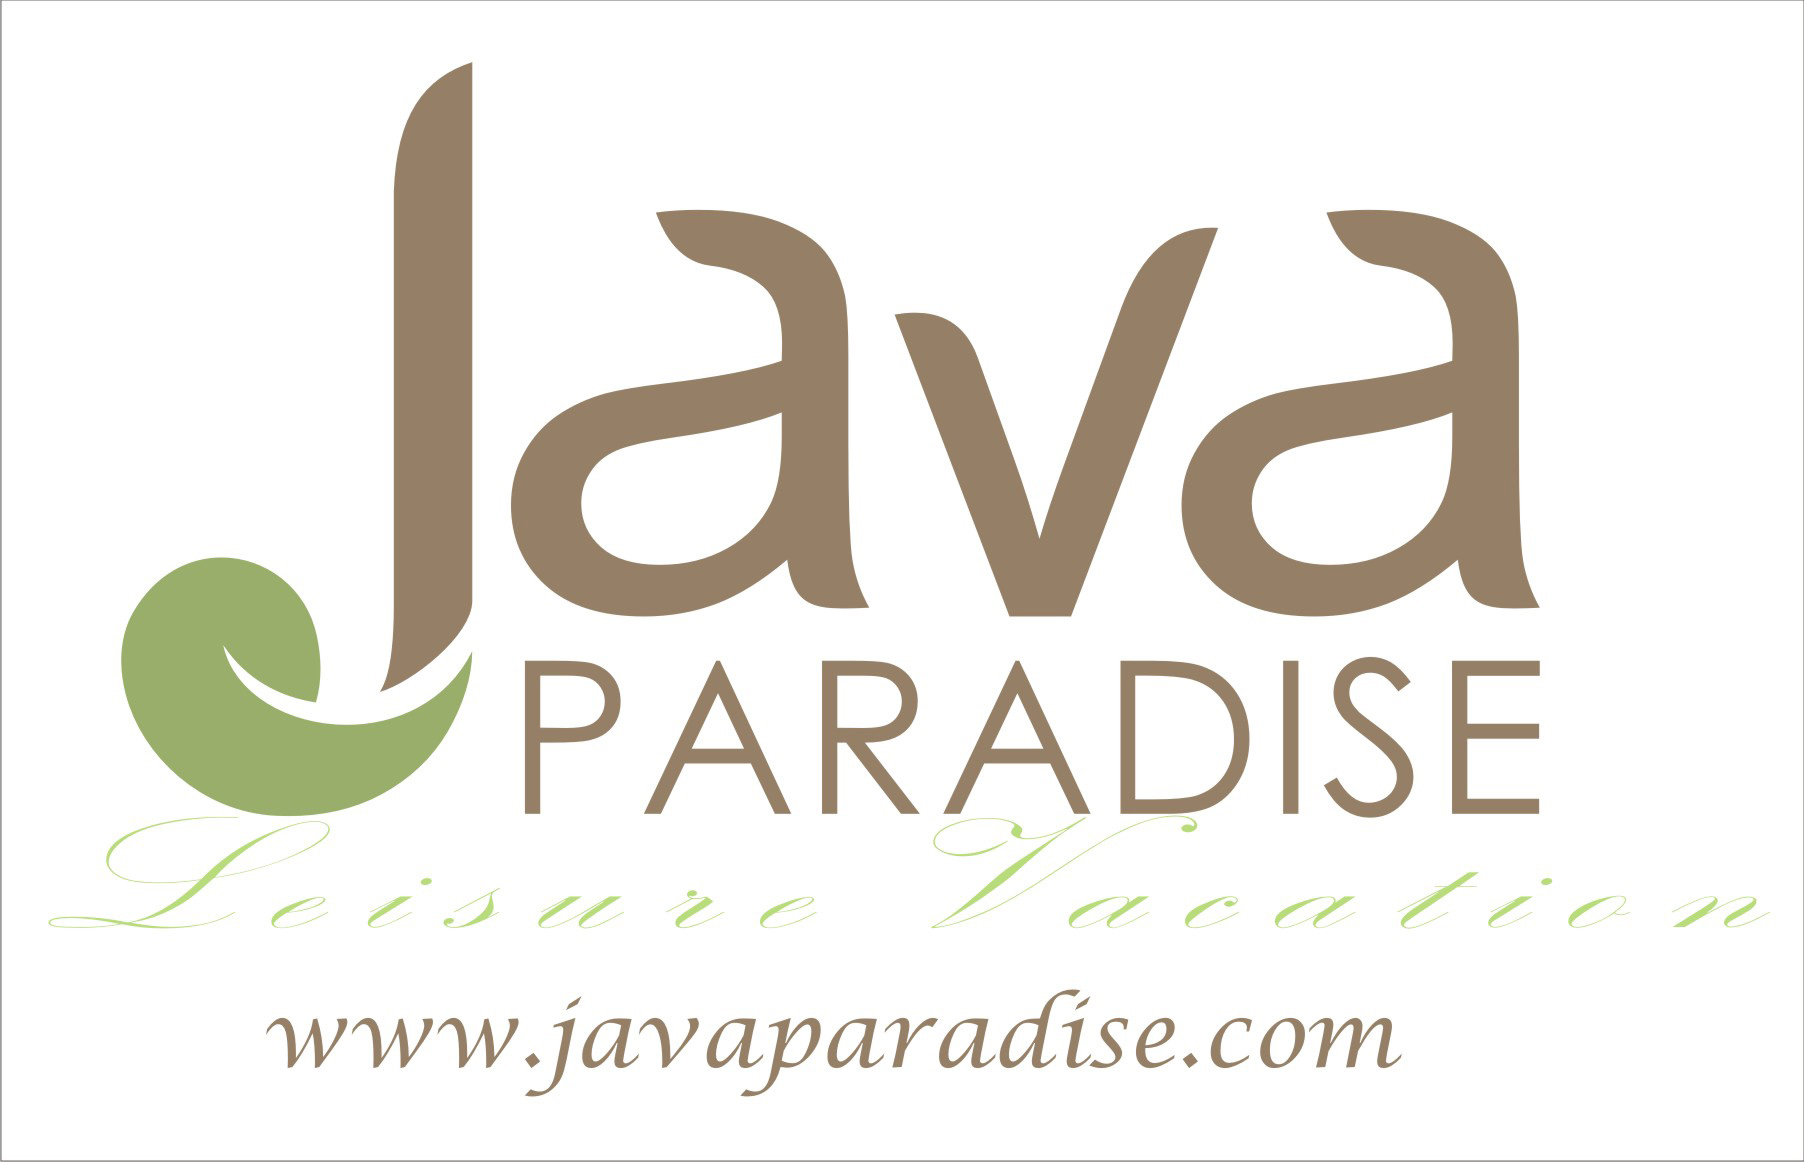 Java Paradise Travel